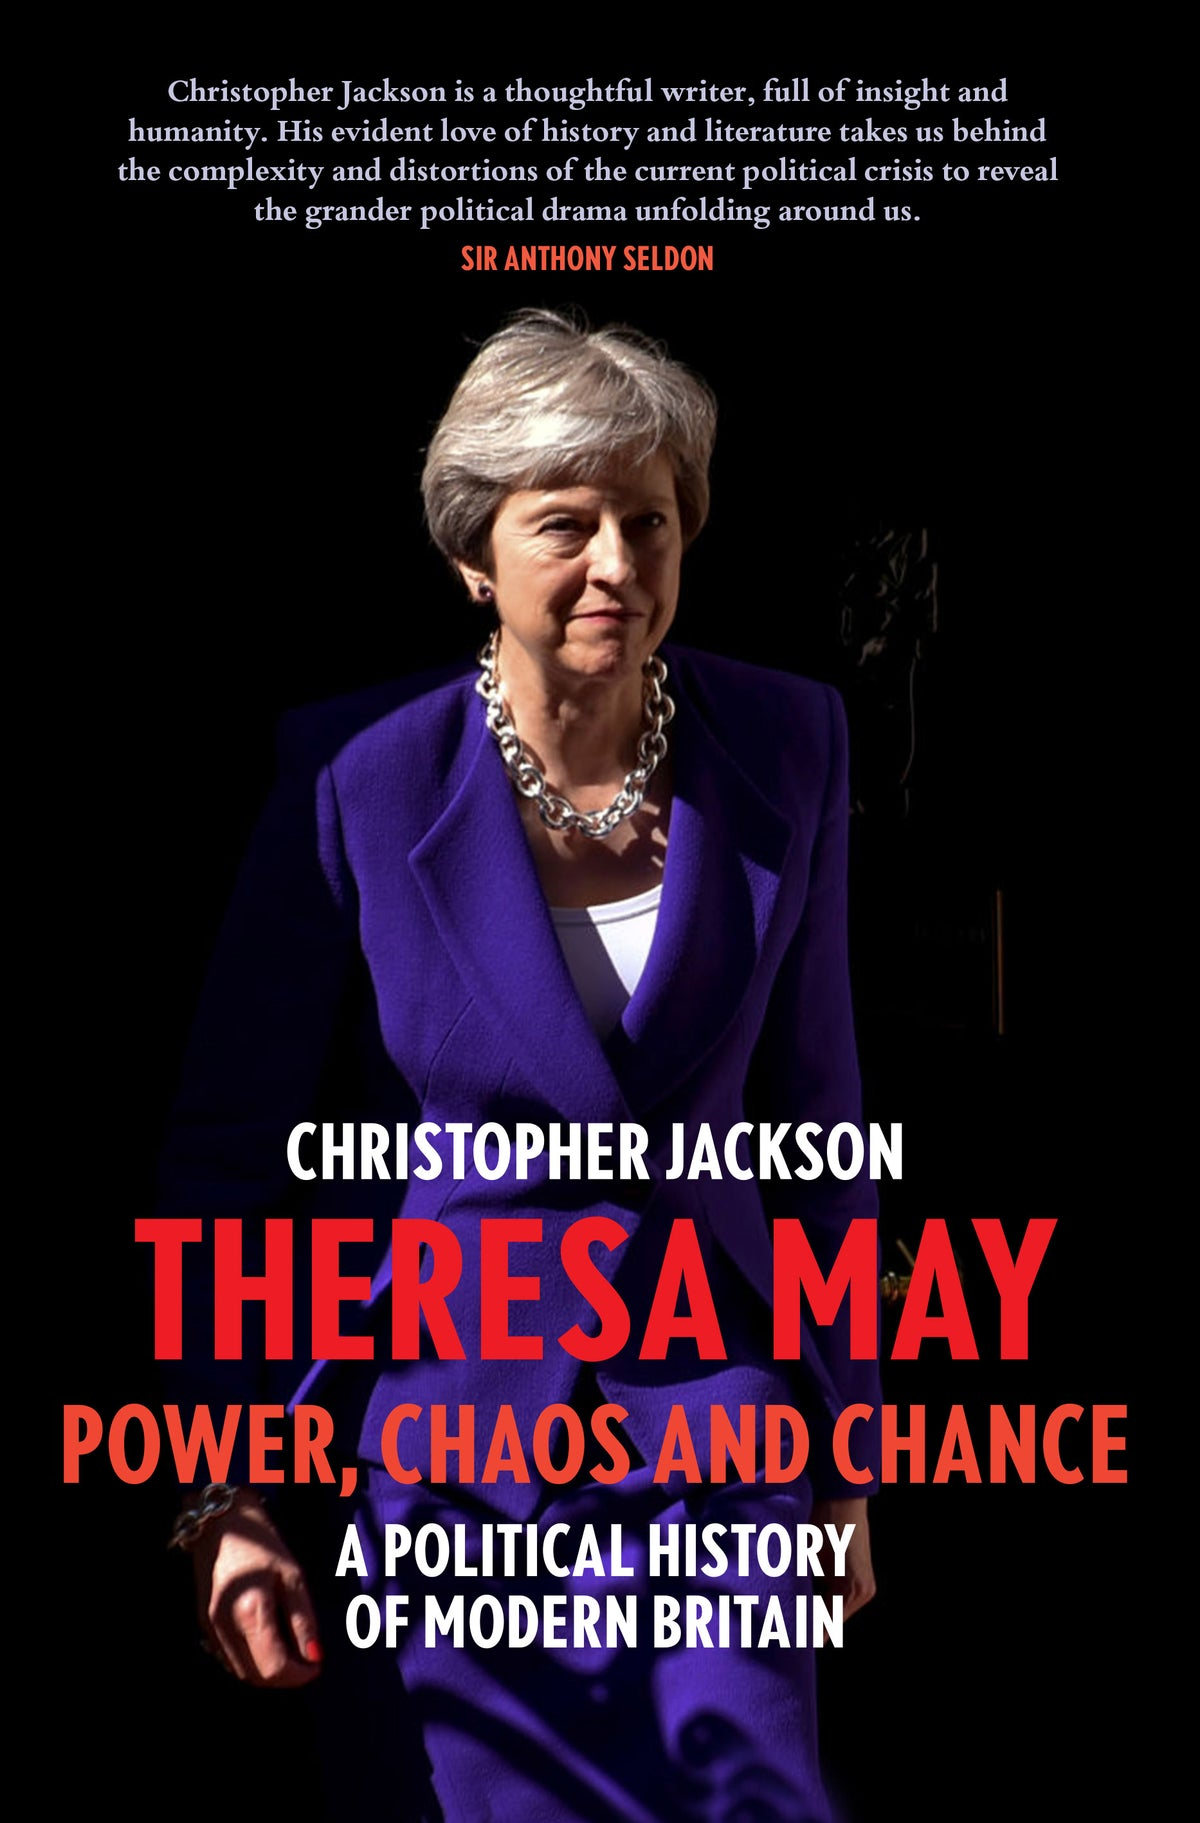 THERESA MAY: POWER, CHAOS AND CHANCE